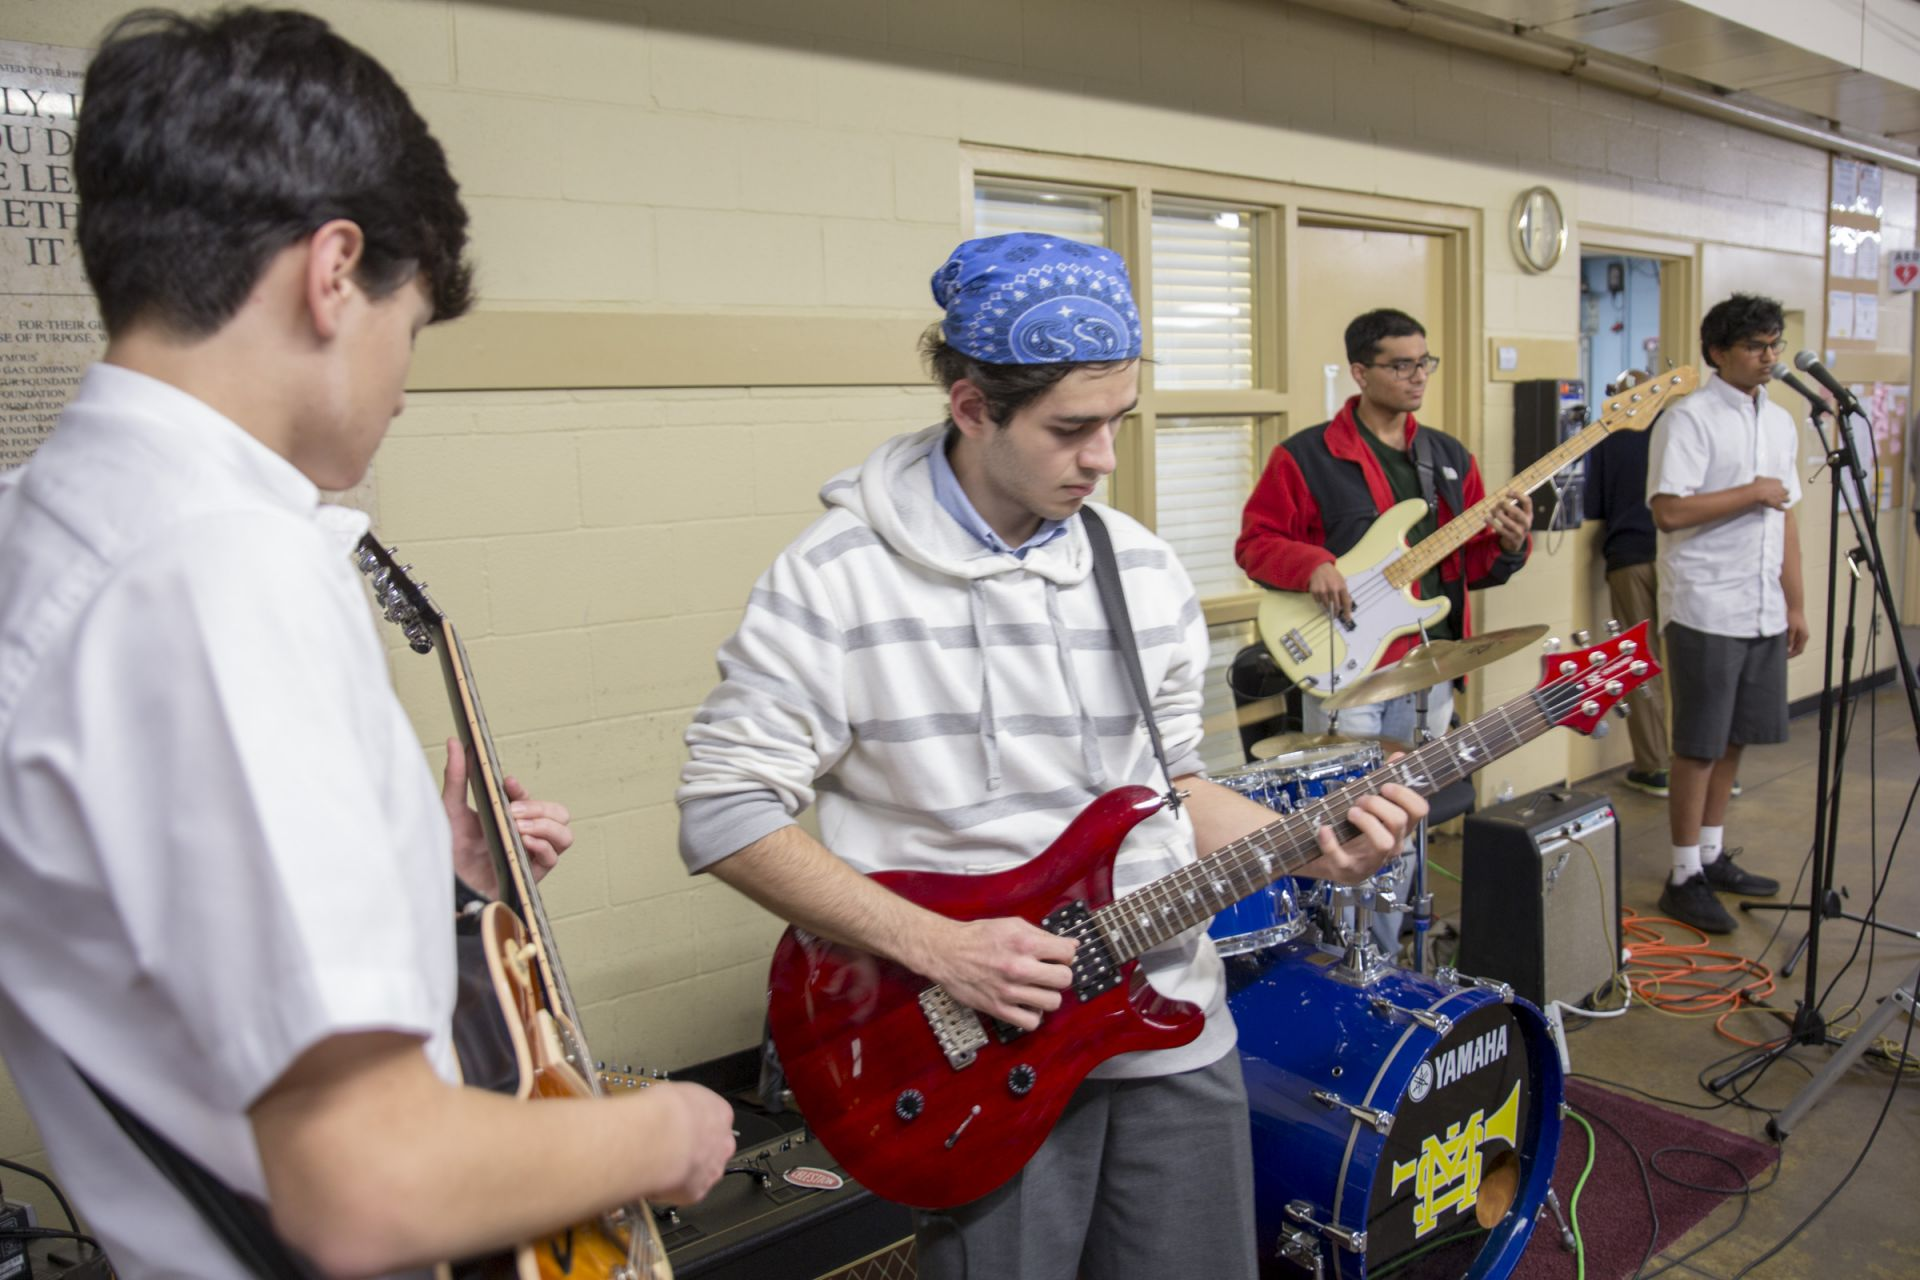 Students perform at Austin Street Center.